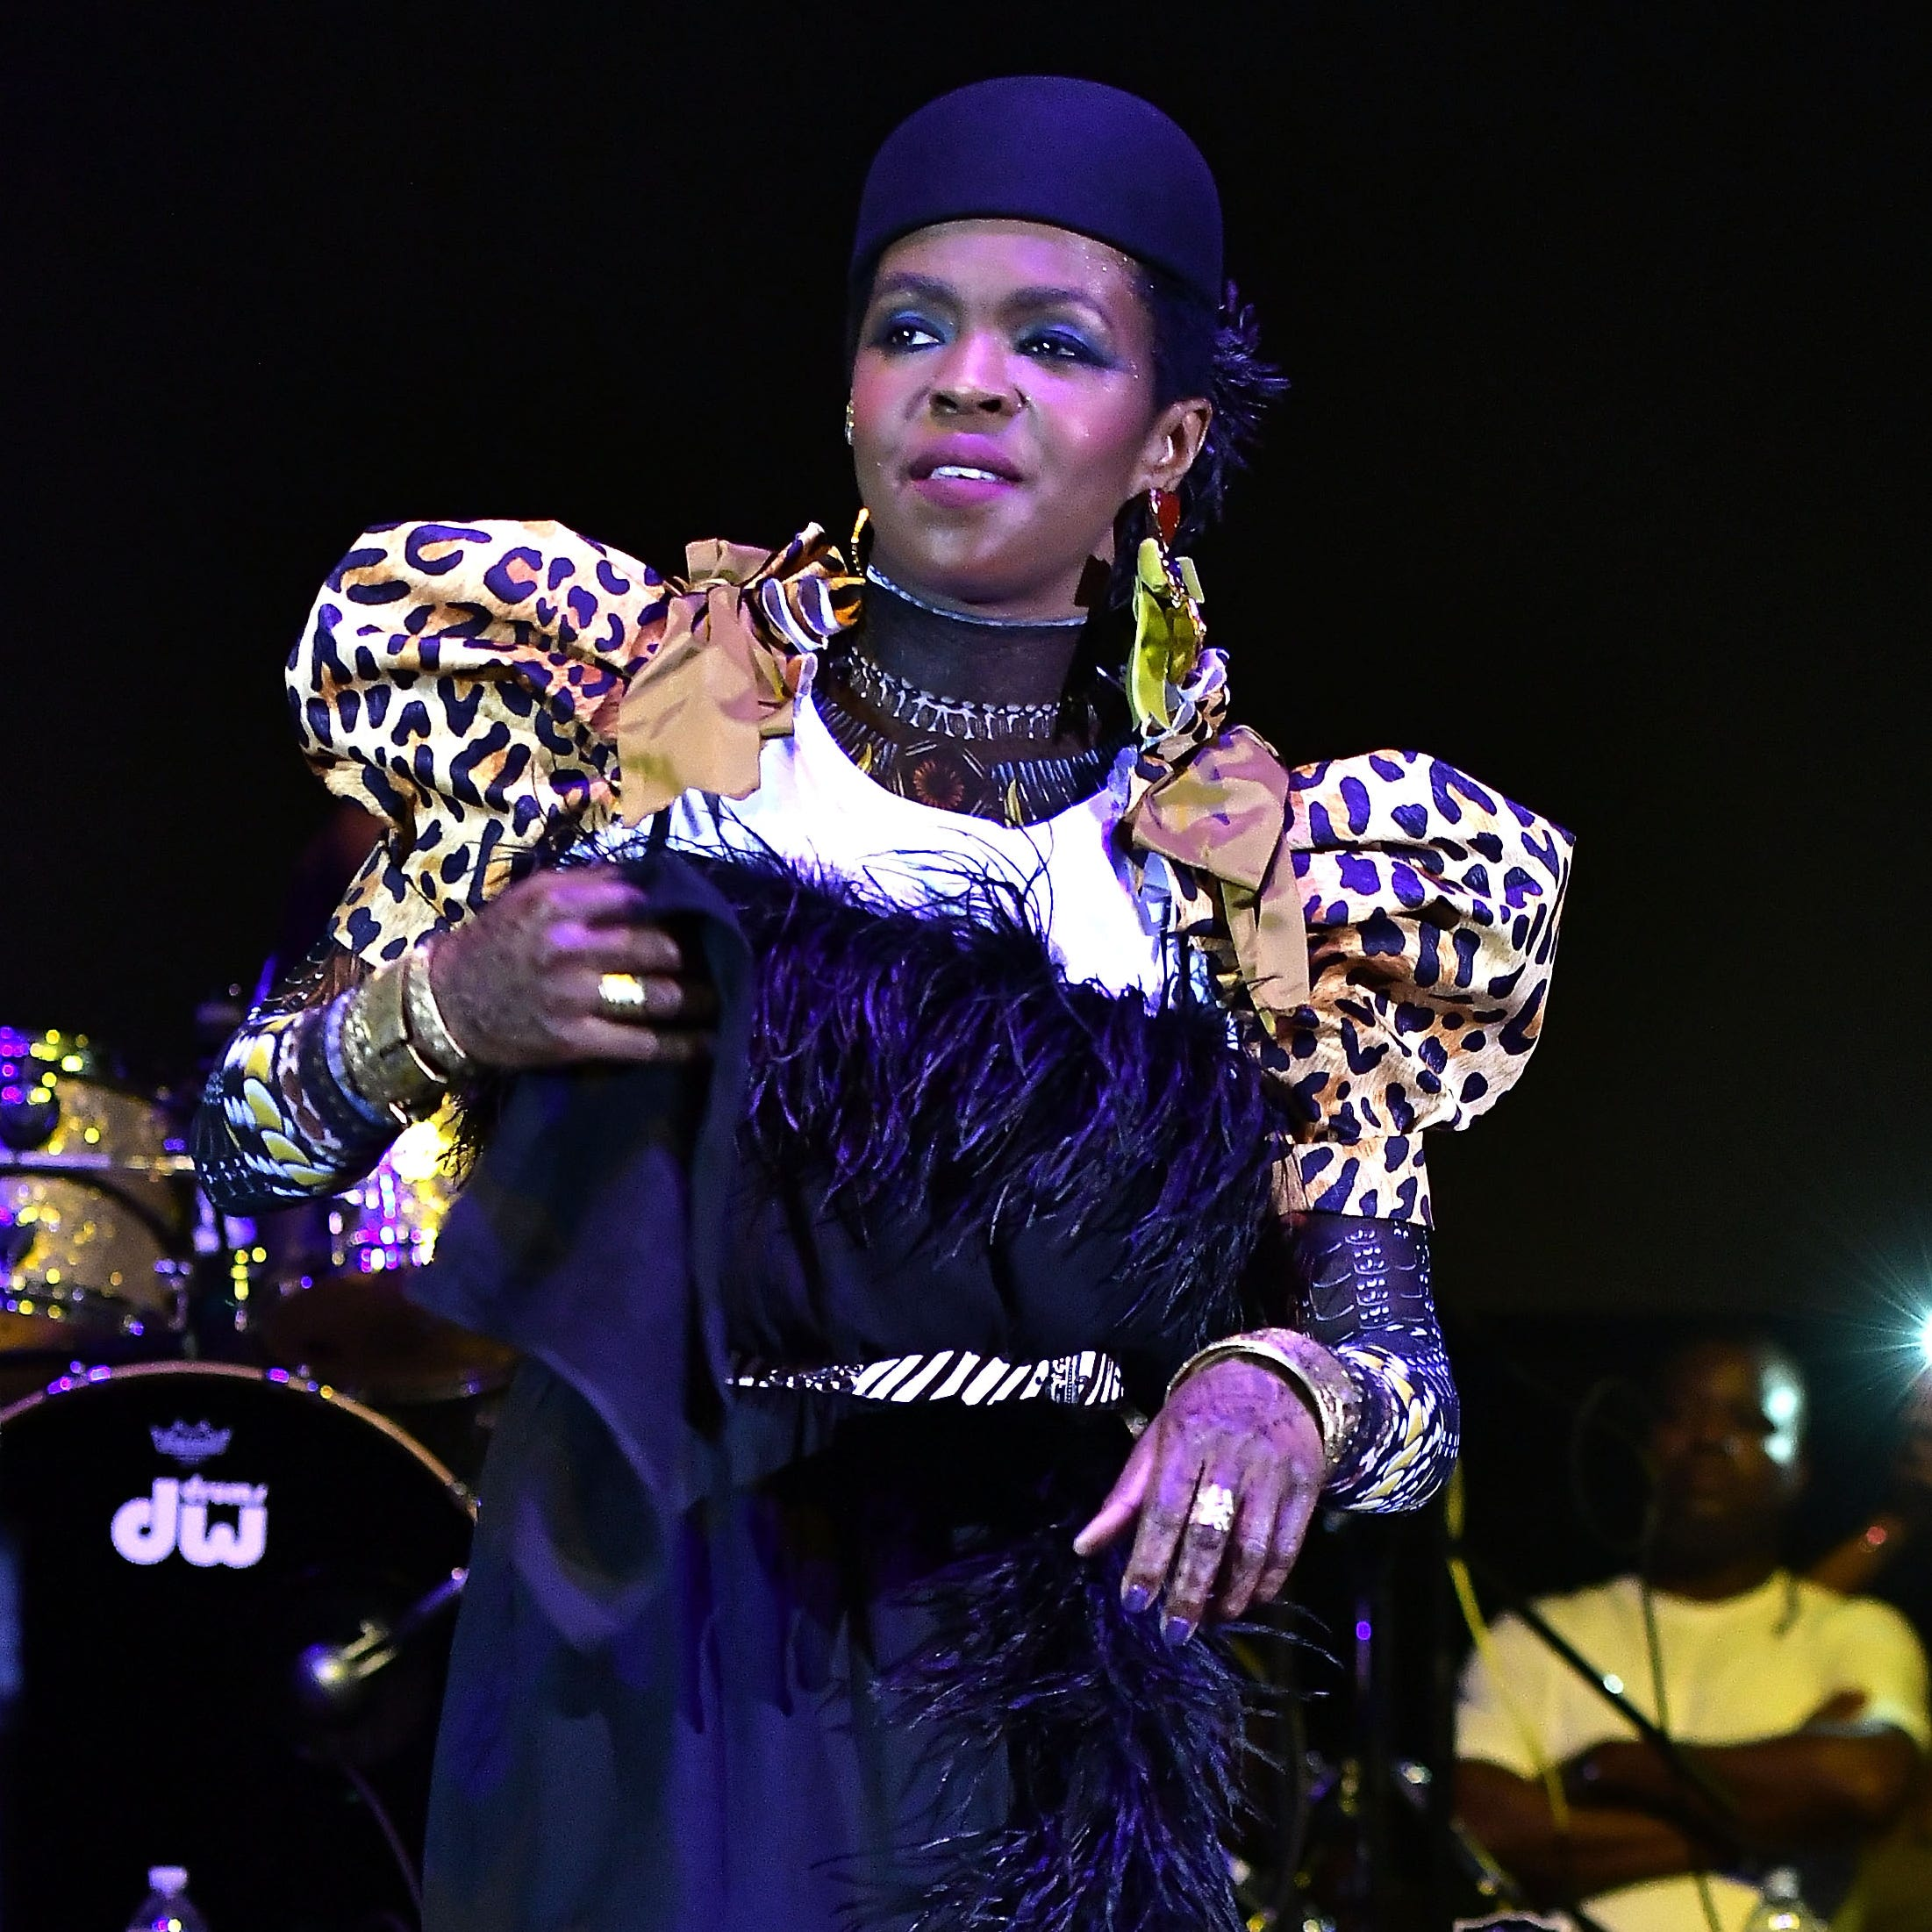 Lauryn Hill 'Miseducation' tour: How to get tickets for NJ concert